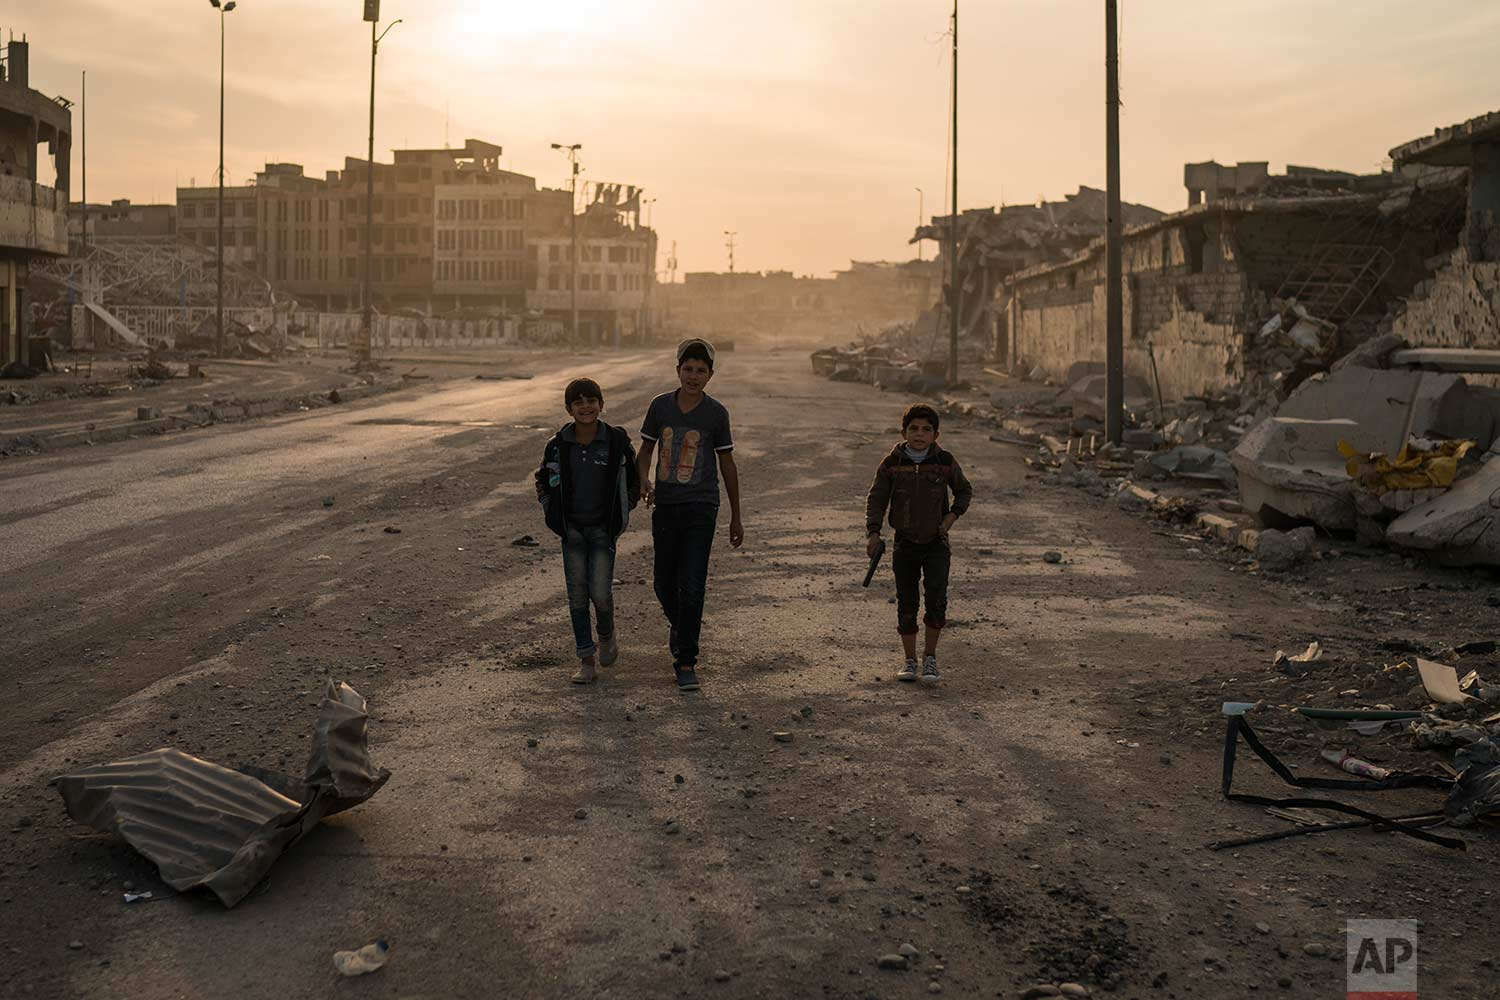 In this Nov. 15, 2017 photo, boys, one of them carrying a toy gun, walk on the empty streets of the Old City, in Mosul, Iraq.(AP Photo/Felipe Dana)